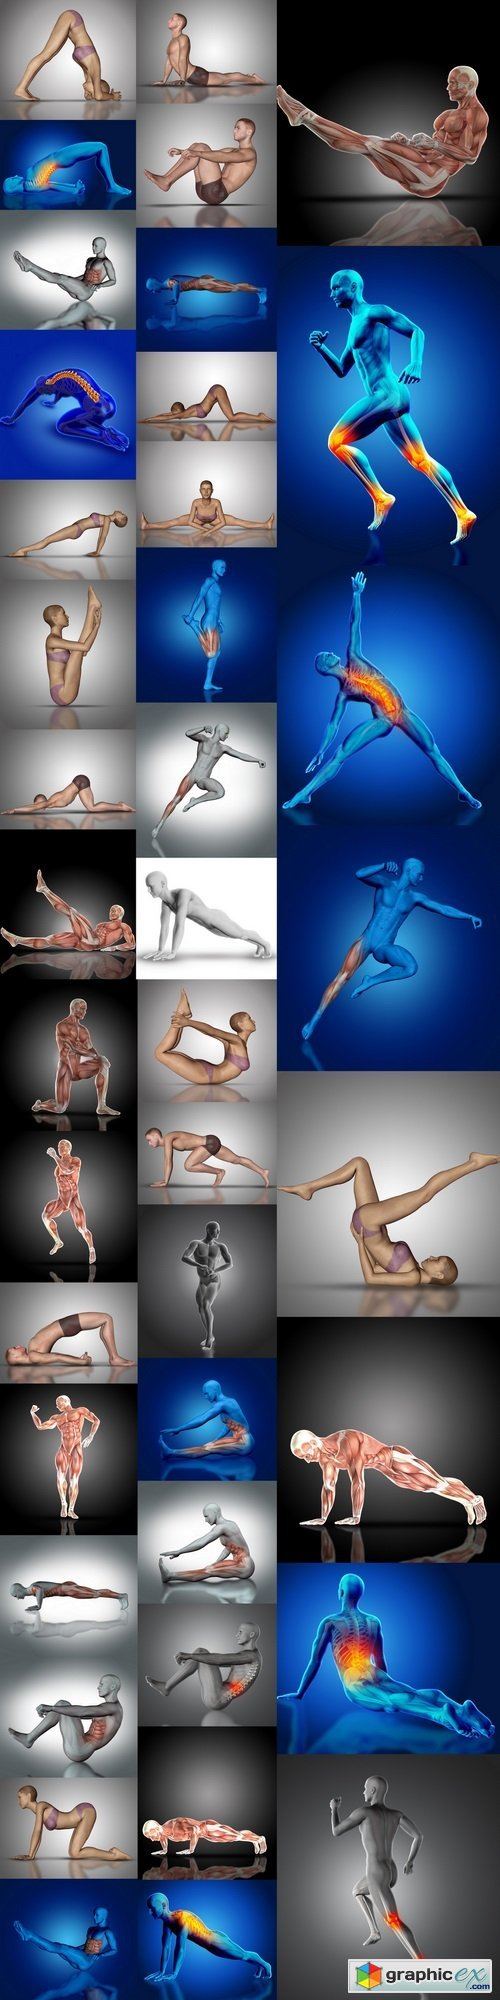 3D render of a medical figure with muscle map  stock images